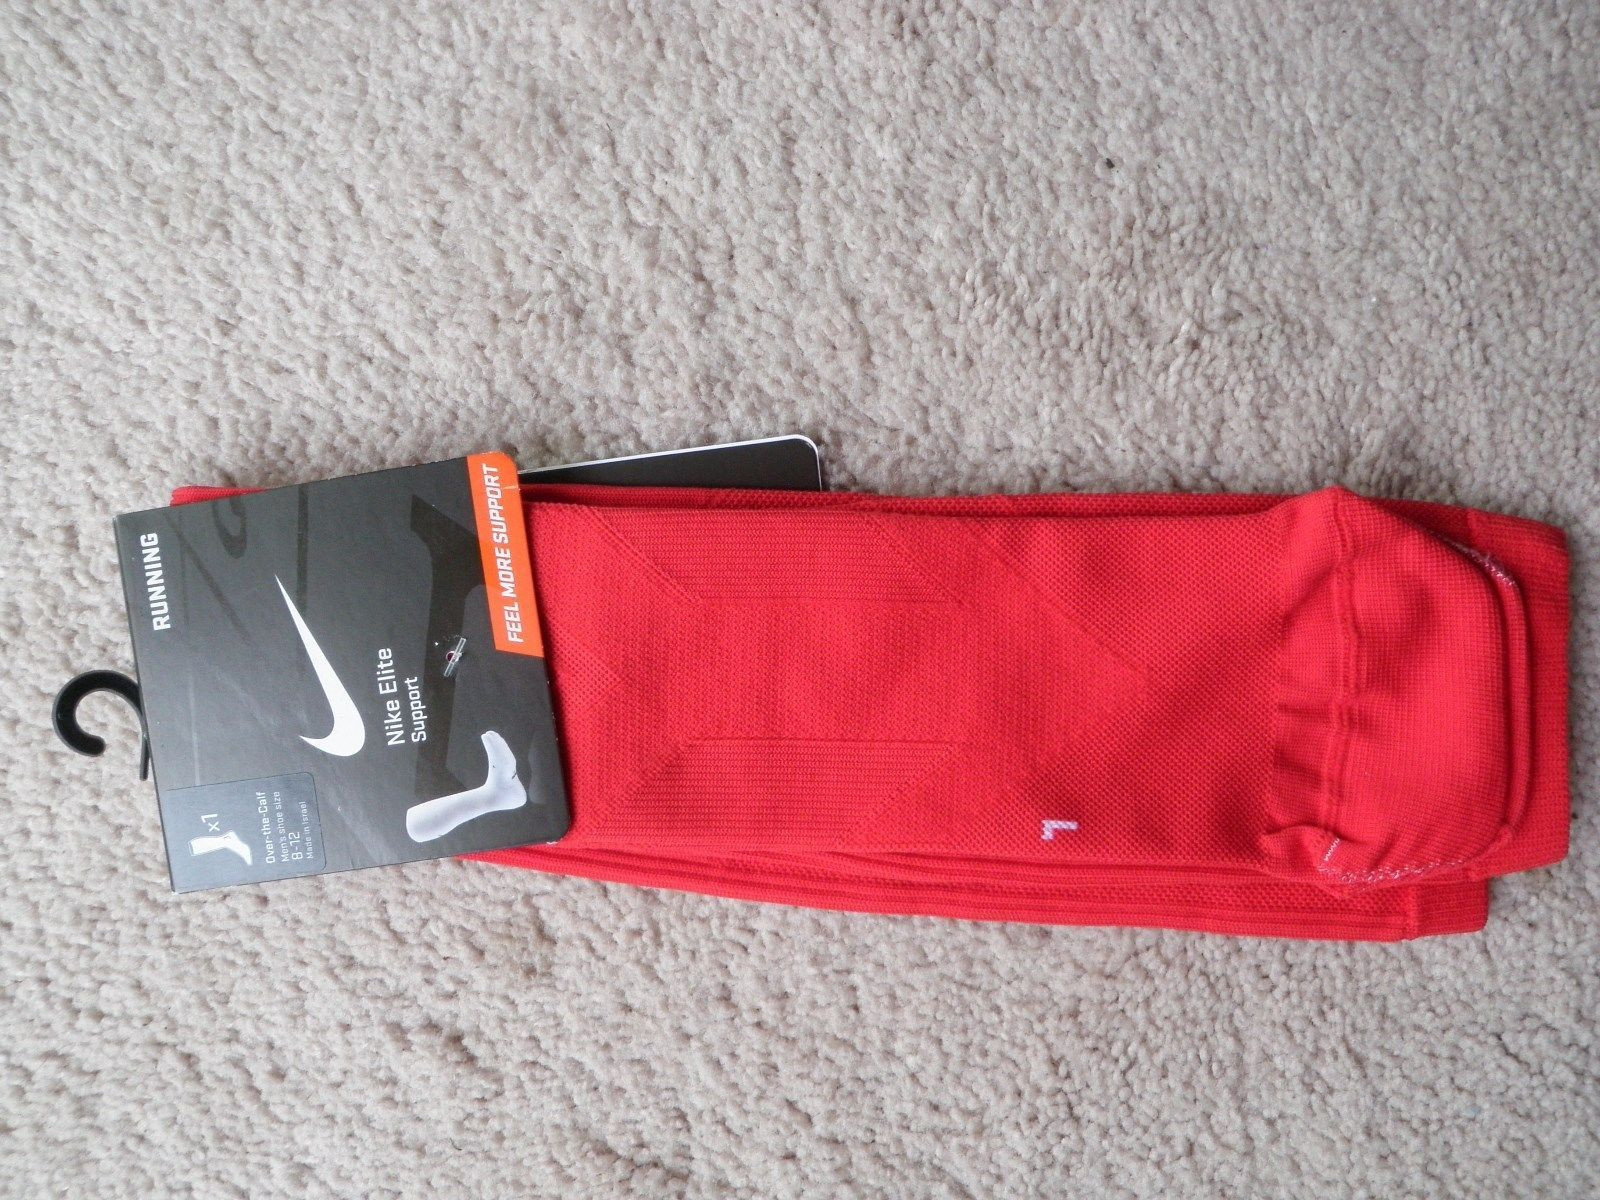 87a4cc5cca NWT- NIKE ELITE Dri-fit socks Over the Calf and 50 similar items. kgrhqnhj  8fi9q1ucujbspl emr1w 60 57